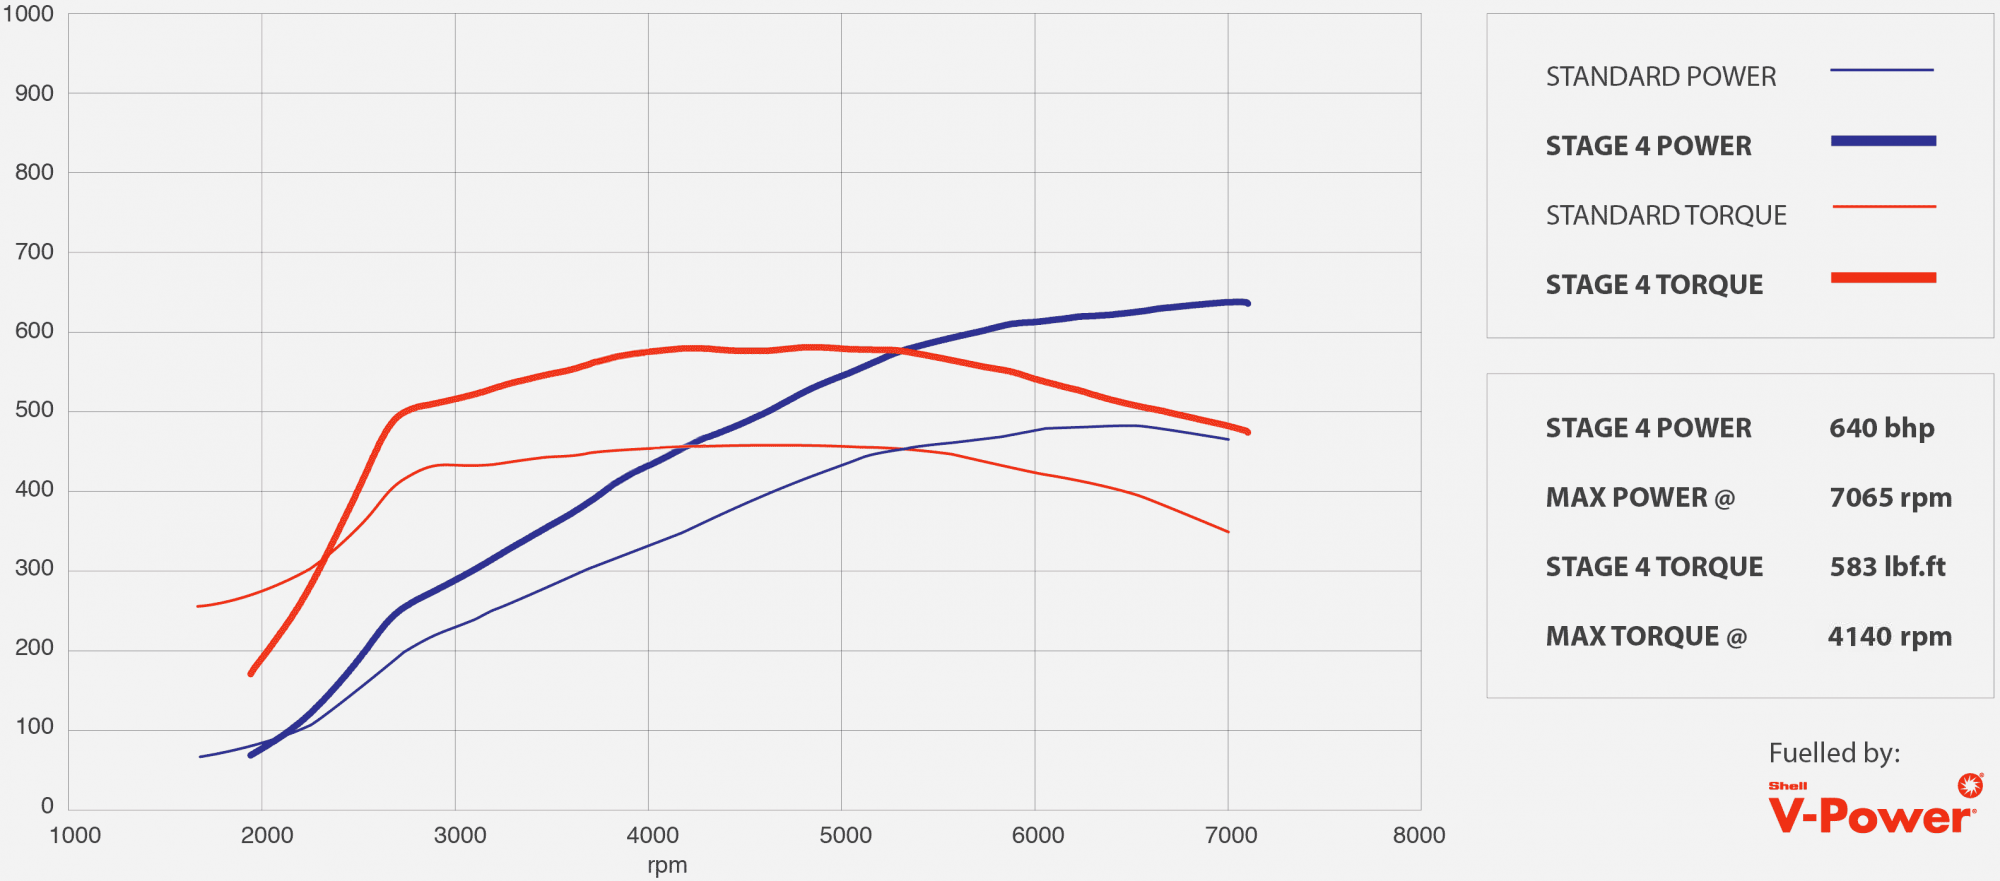 GTR tuning stage 4 power graph